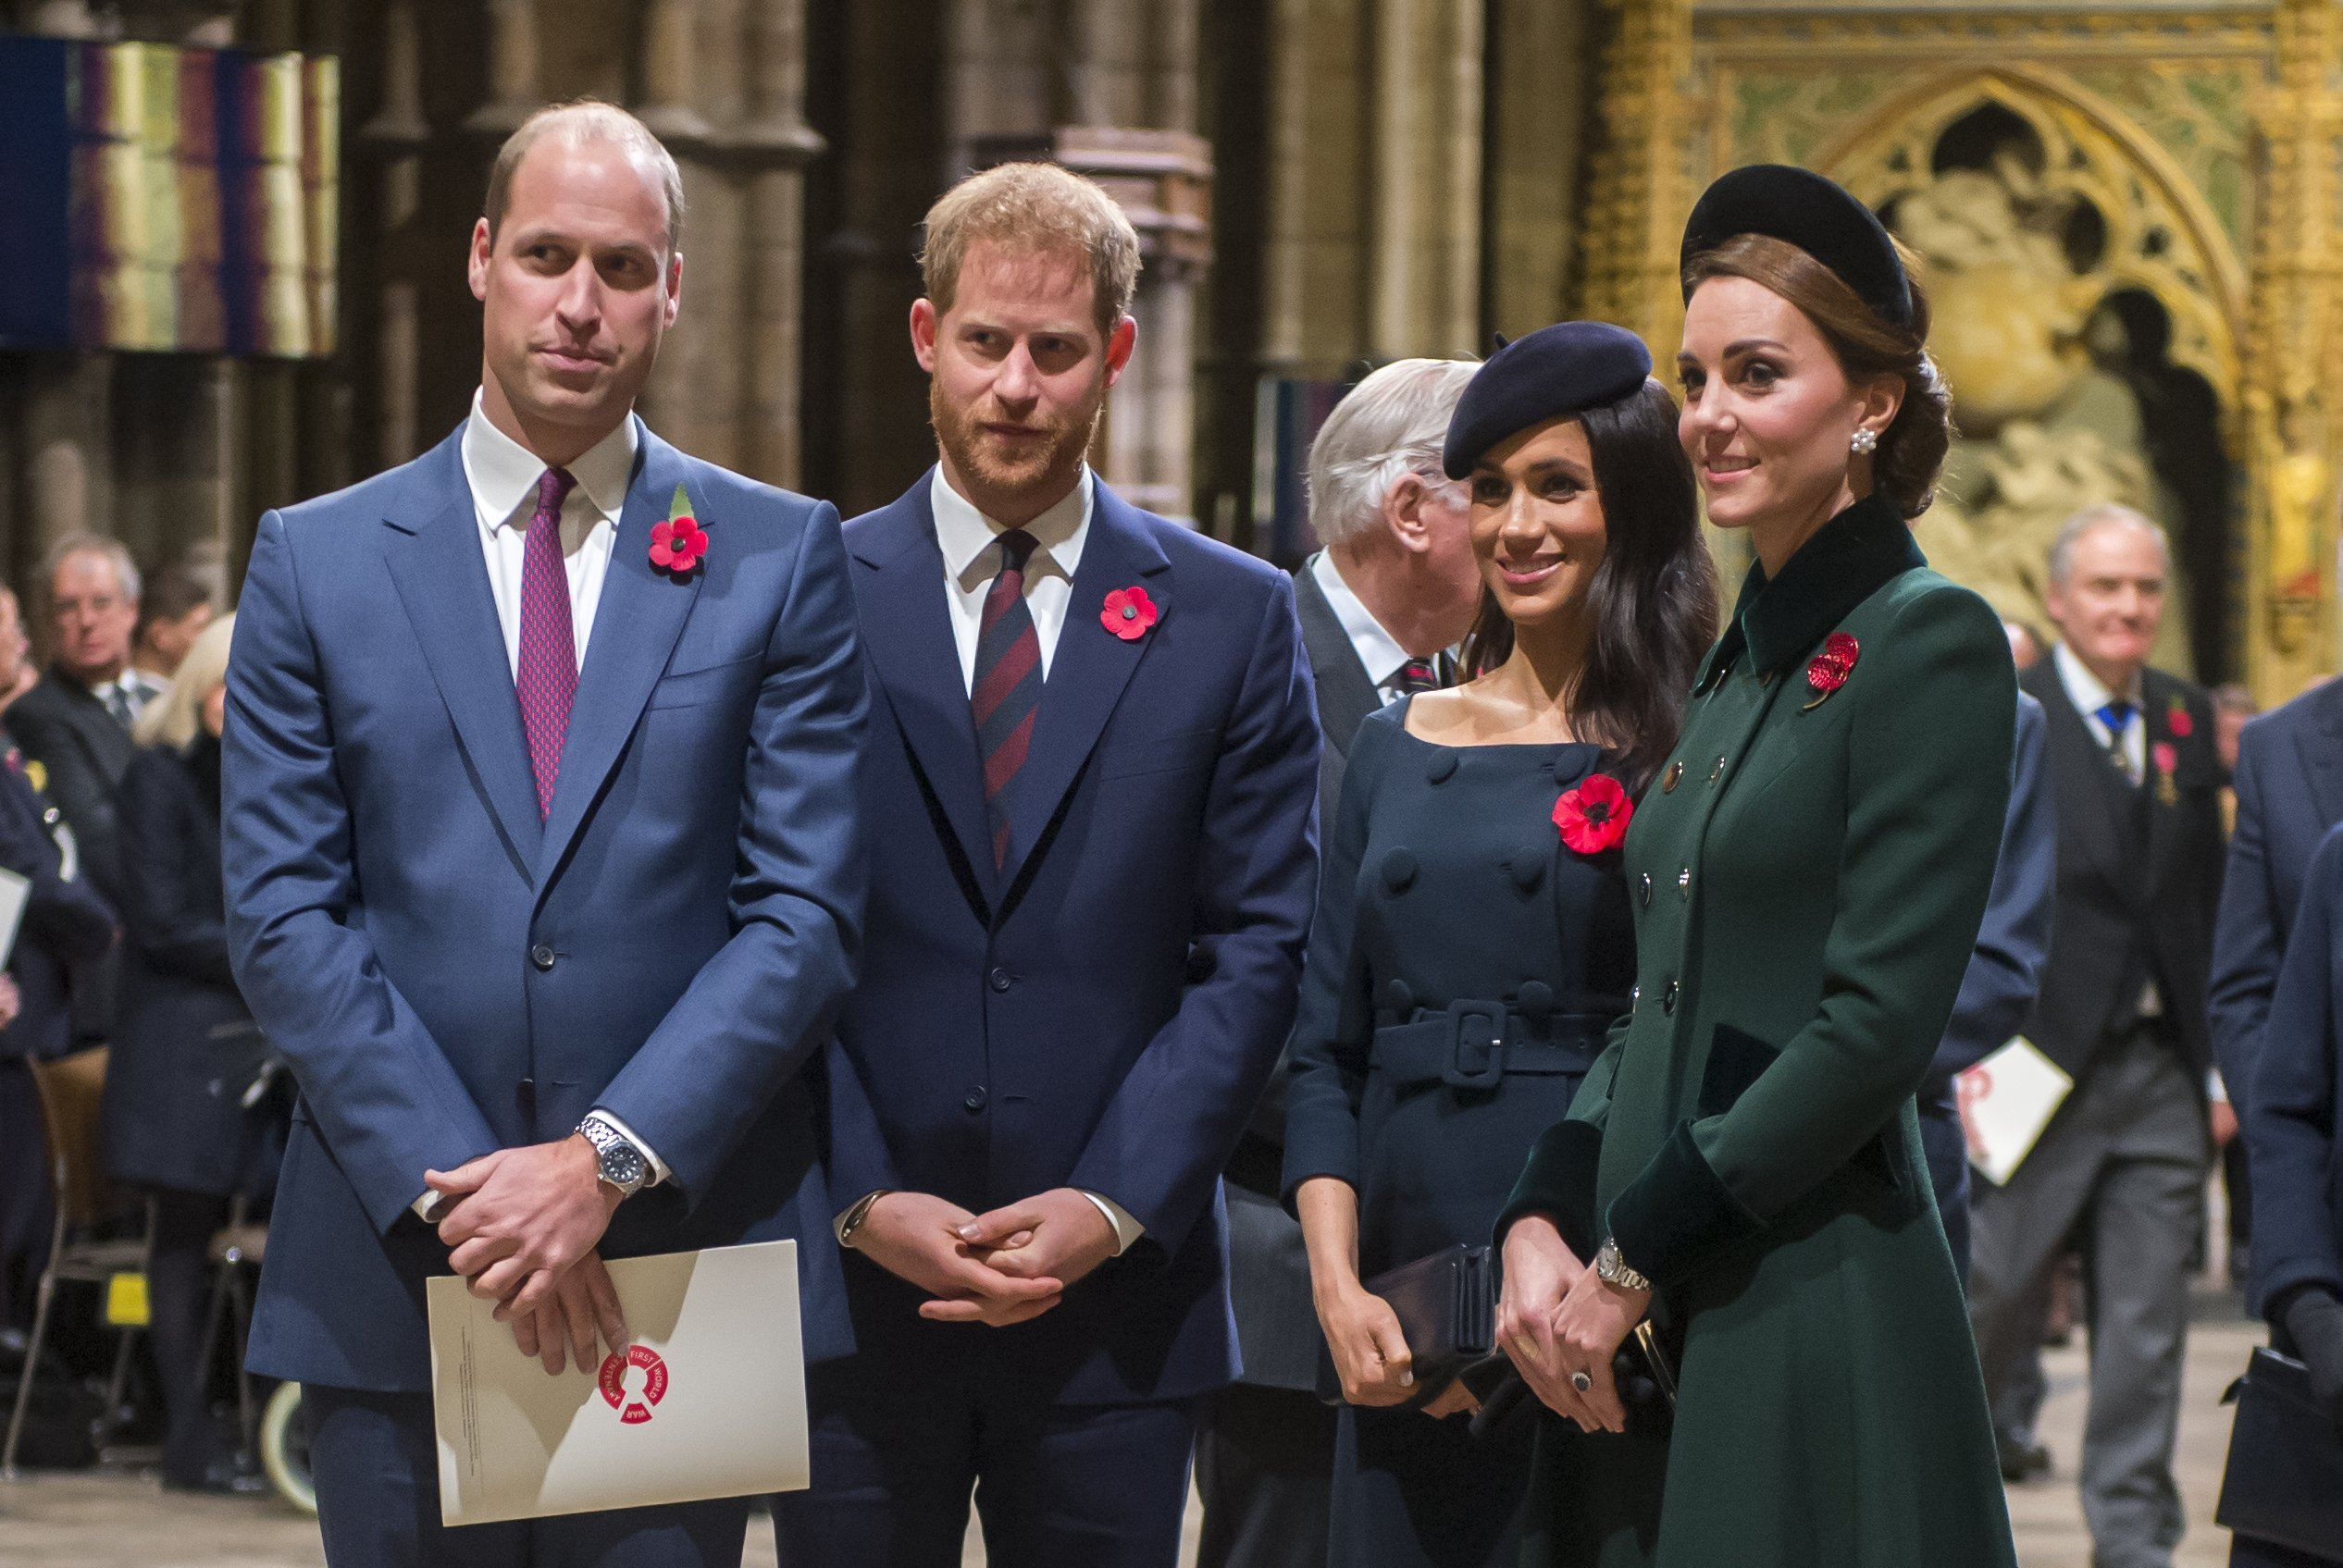 Prince William, Prince Harry, Meghan Markle, and Kate Middleton attend the WW1 armstice centenary event in London, England on November 11, 2018 | Photo: Getty Images